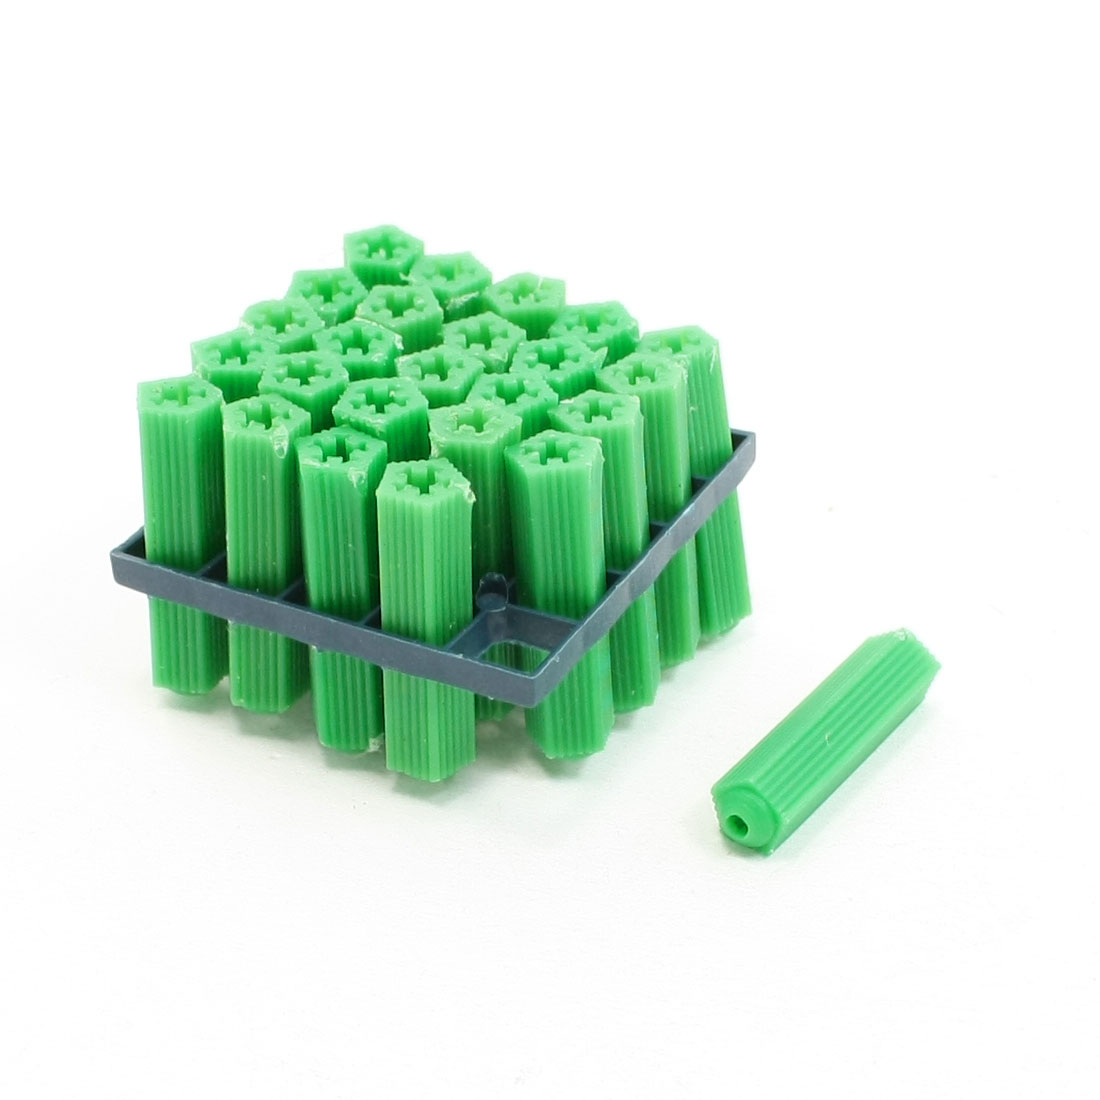 Unique Bargains 25 Pcs Screw Fixing Green 8mm Nonslip Plastic Wall Plugs